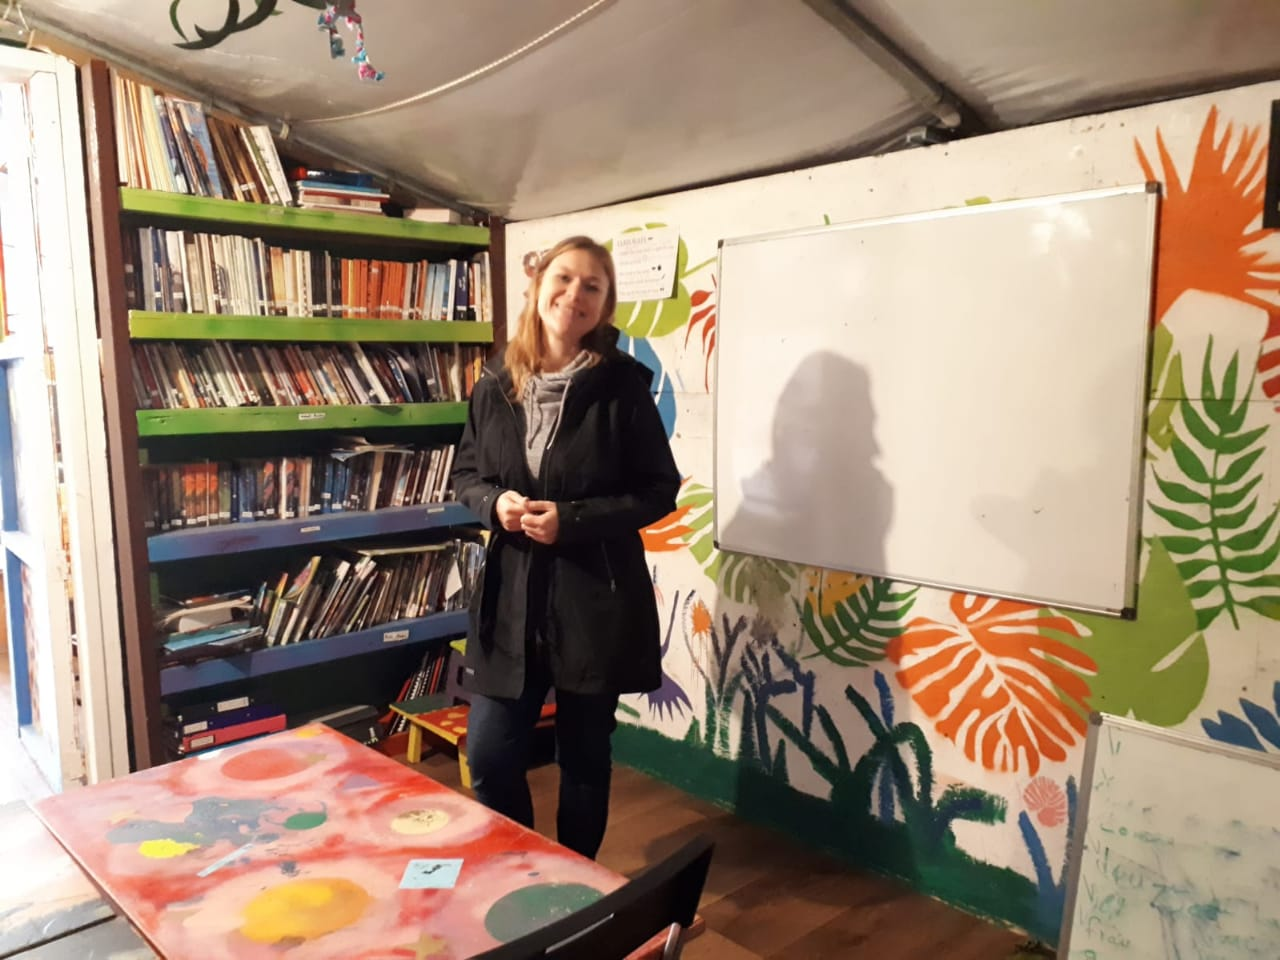 This is Ally, LHI Refugee Centre Education Manager